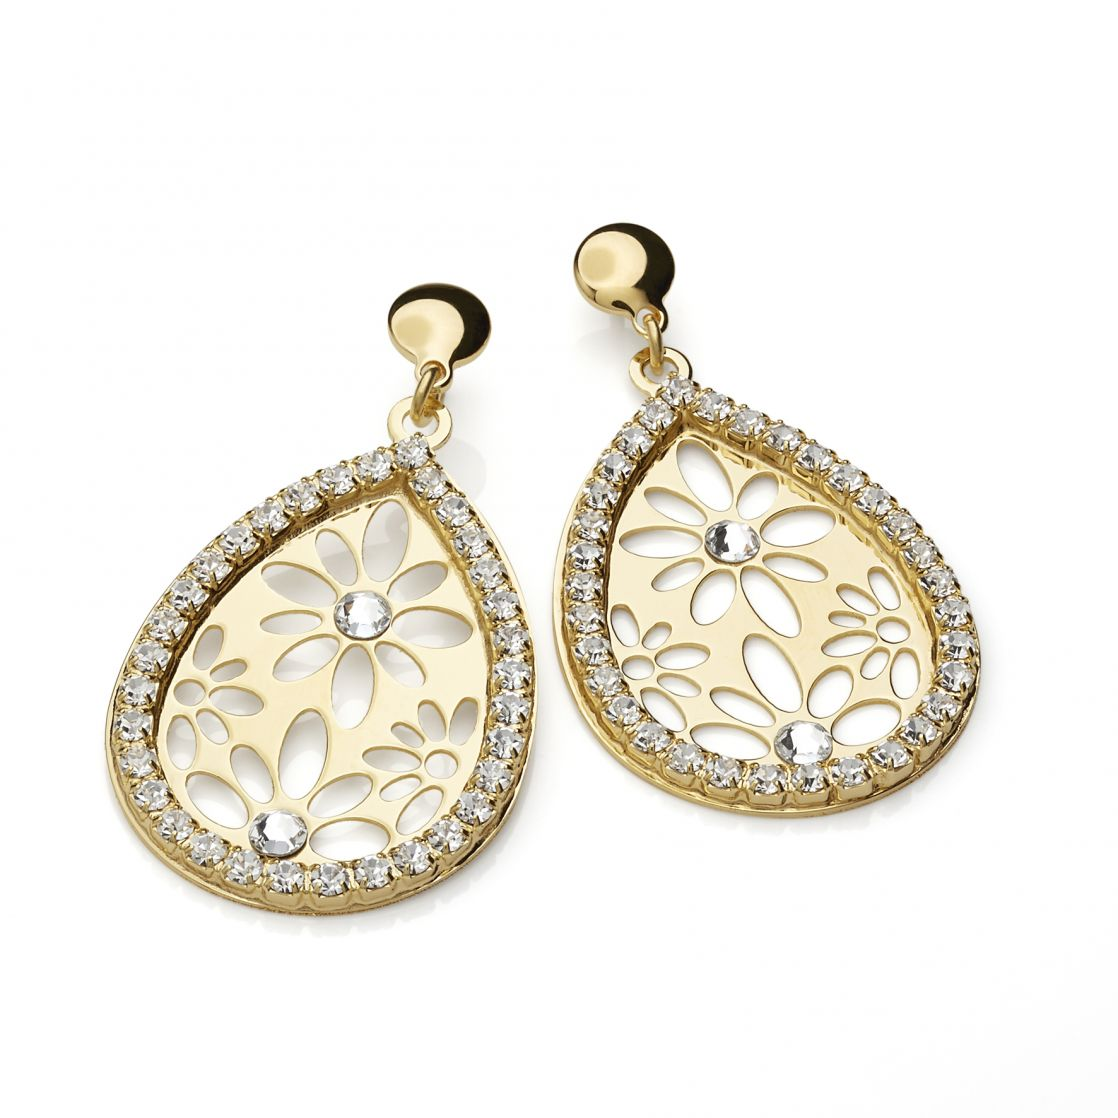 DROP-SHAPED EARRINGS YELLOW GOLD PLATING WITH CRYSTALS AND STRASS